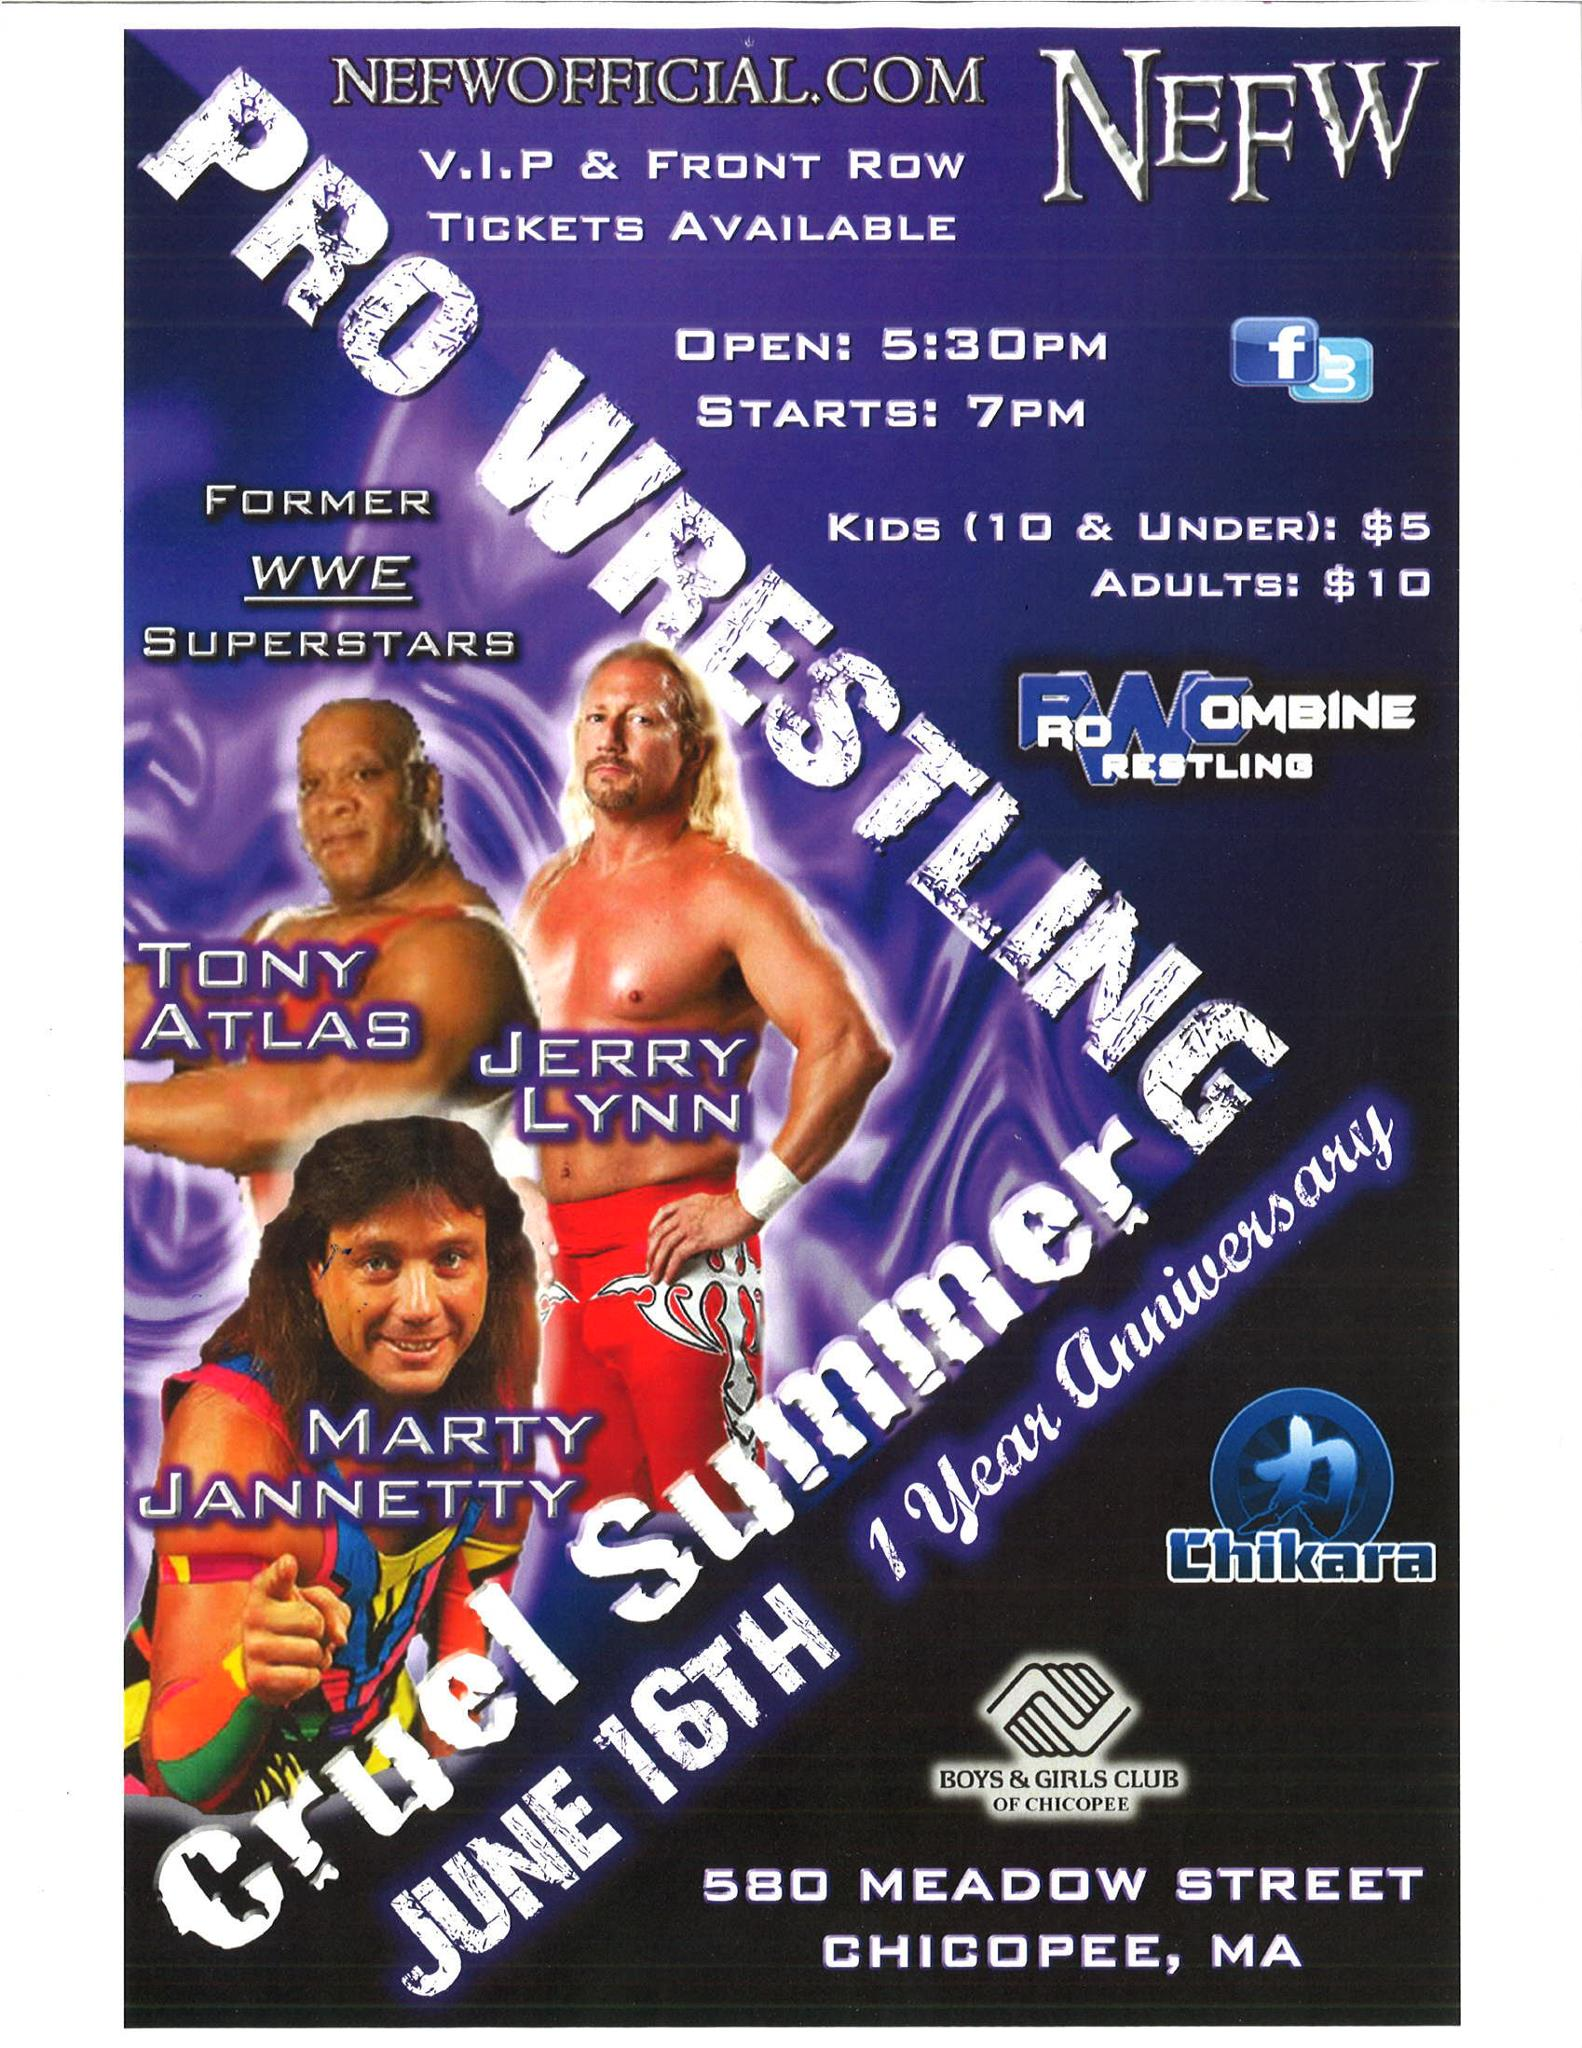 Upcoming Event – 6/16/12 – NEFW – Chicopee, MA